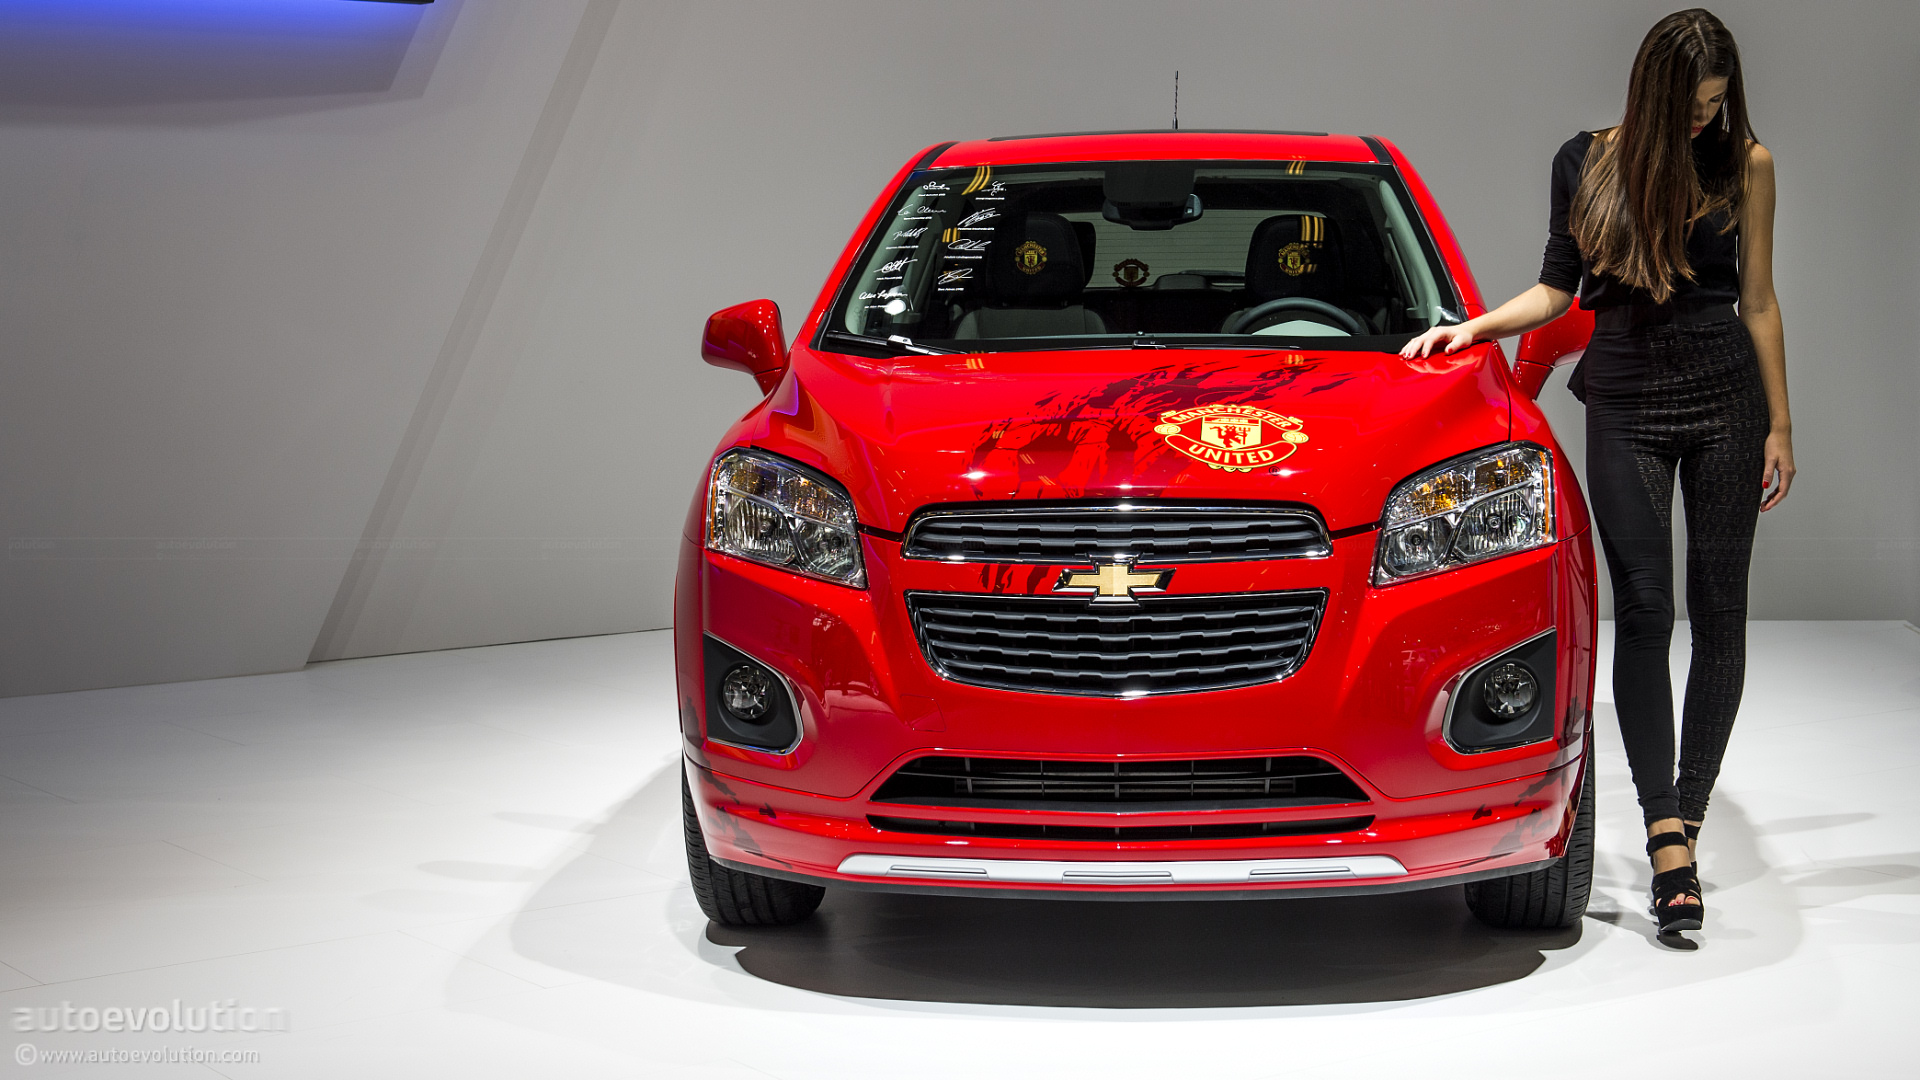 Paris 2012 Chevrolet Trax in Manchester United Theme Live Photos